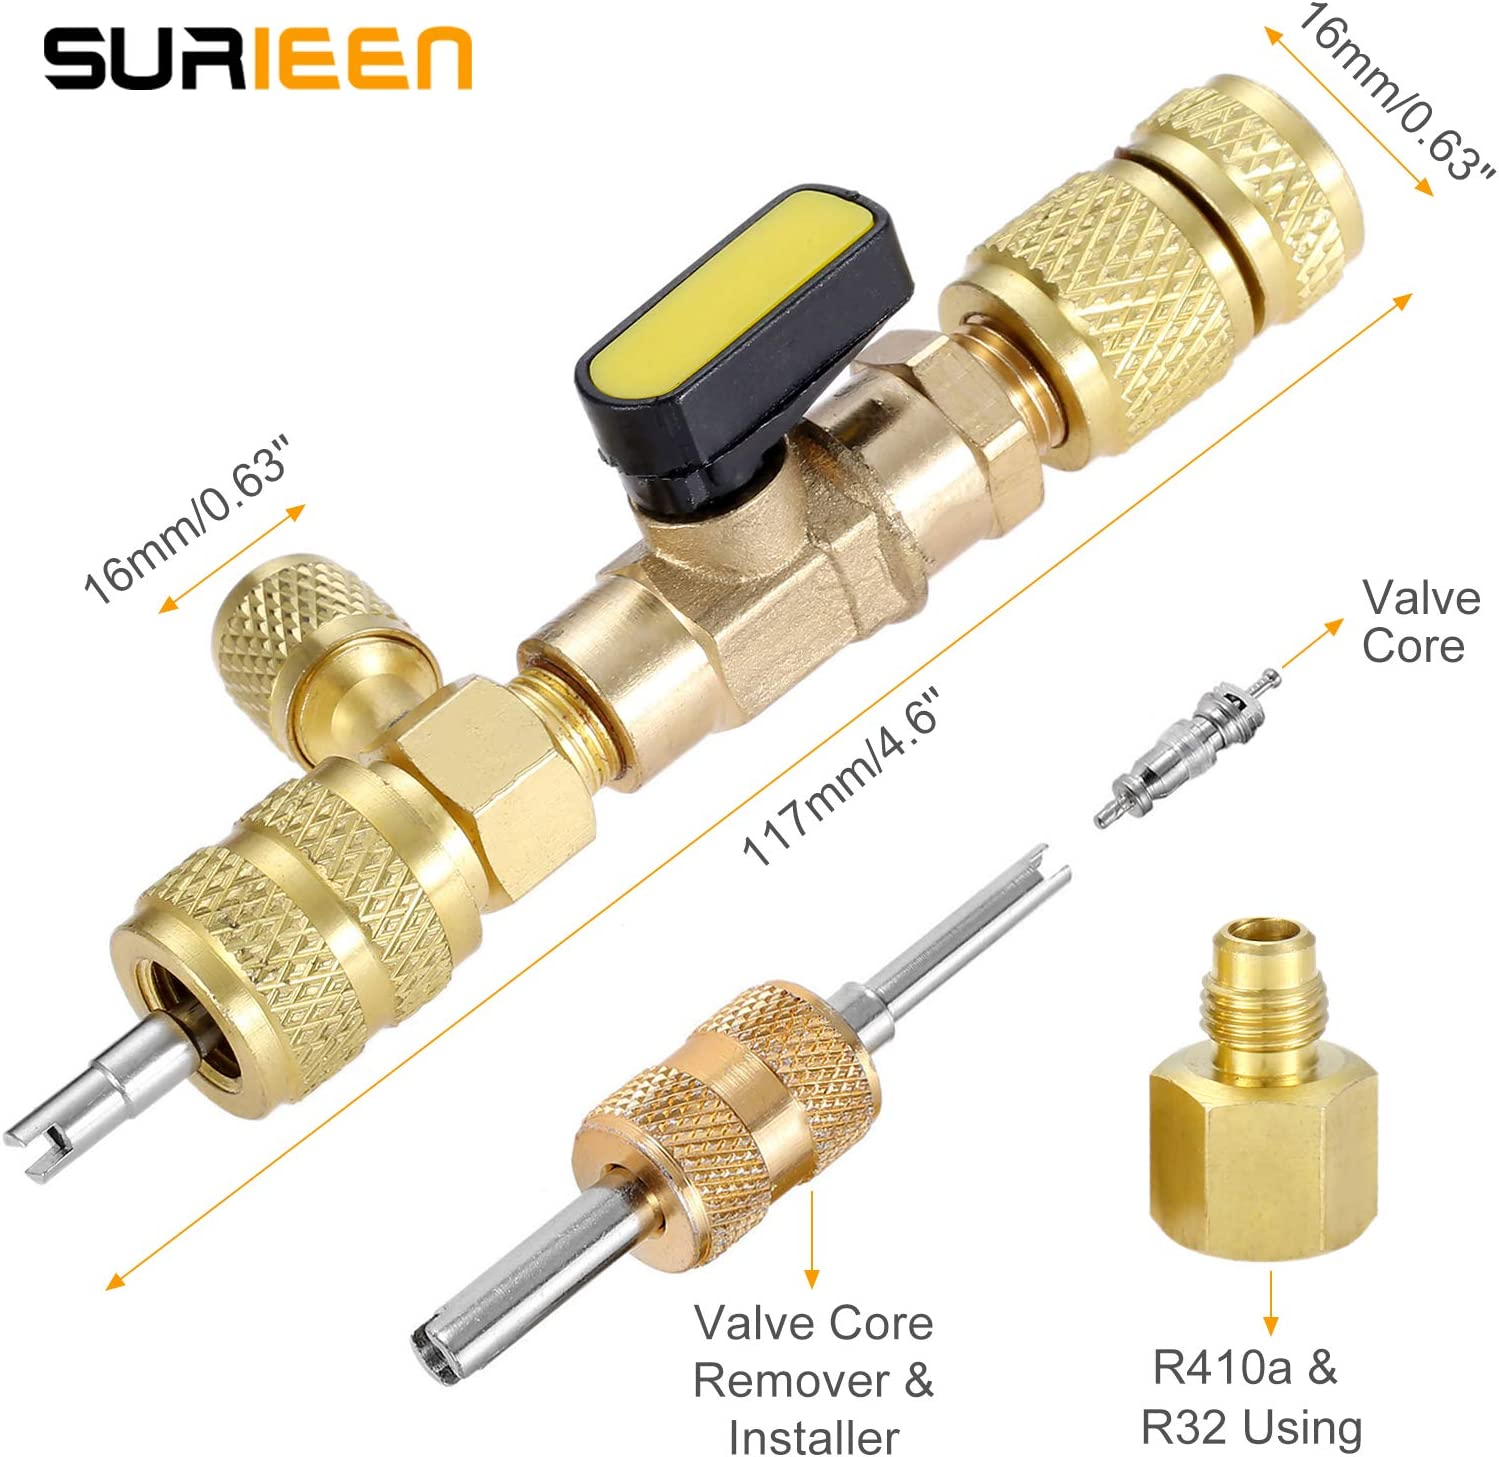 with 10PCS 5v1 Valve Cores and Double Head Valve Core Remover R410A R22 Valve Core Remover Installer Tool with Dual Size SAE 1//4 /& 5//16 Port for R404A R407C R134A R12 R32 HVAC System